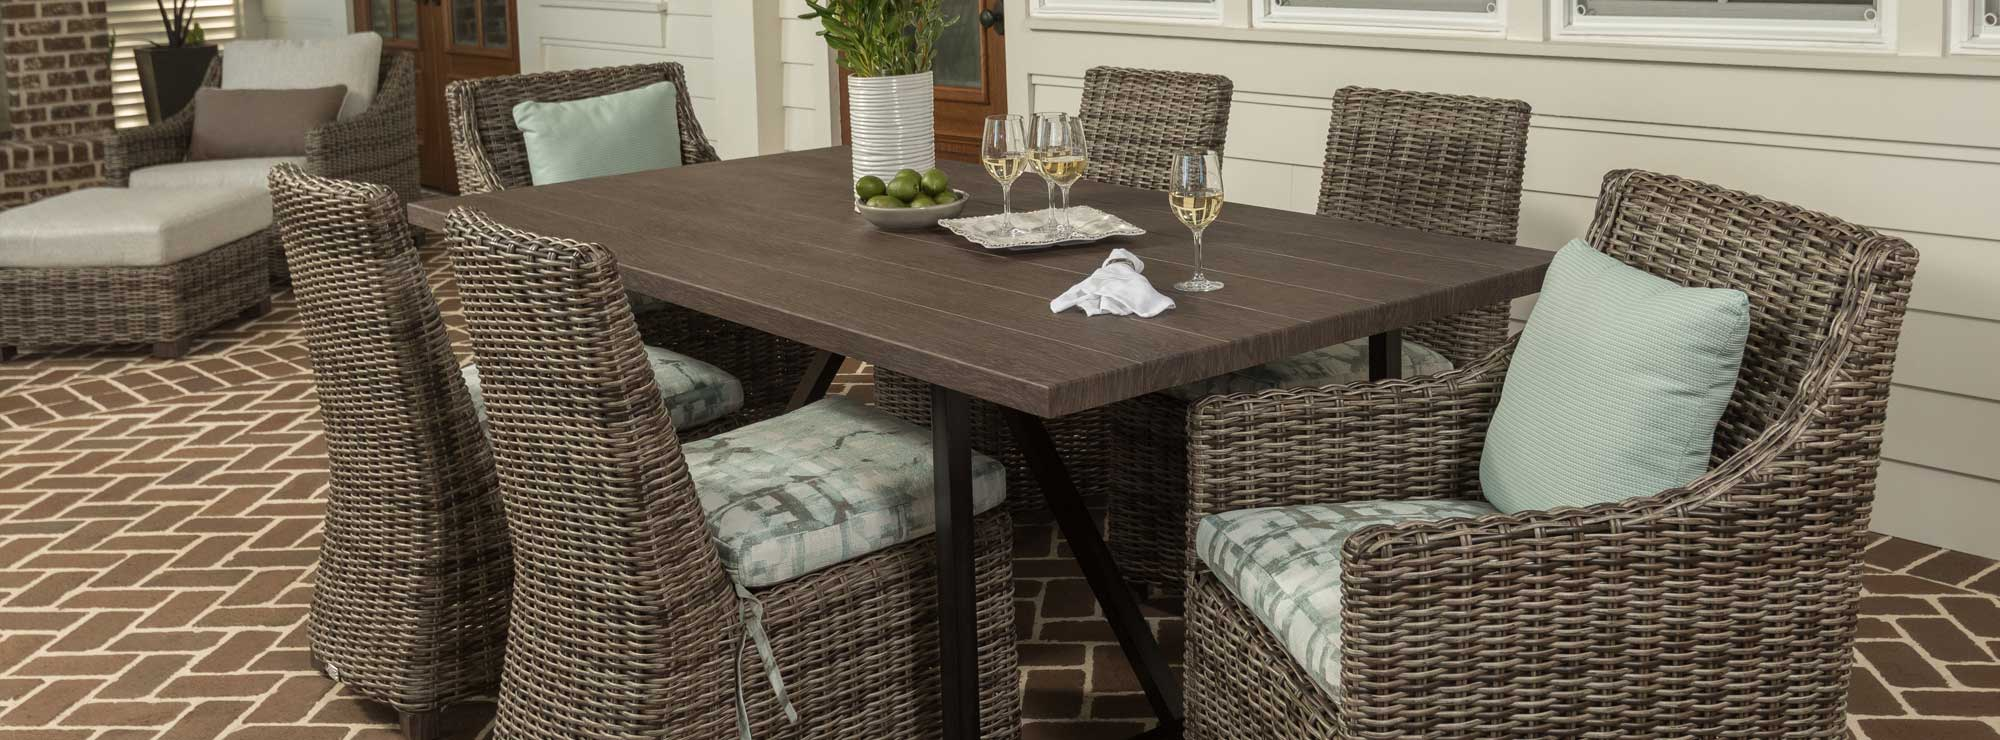 Woven Wicker Outdoor Dining Set for 6